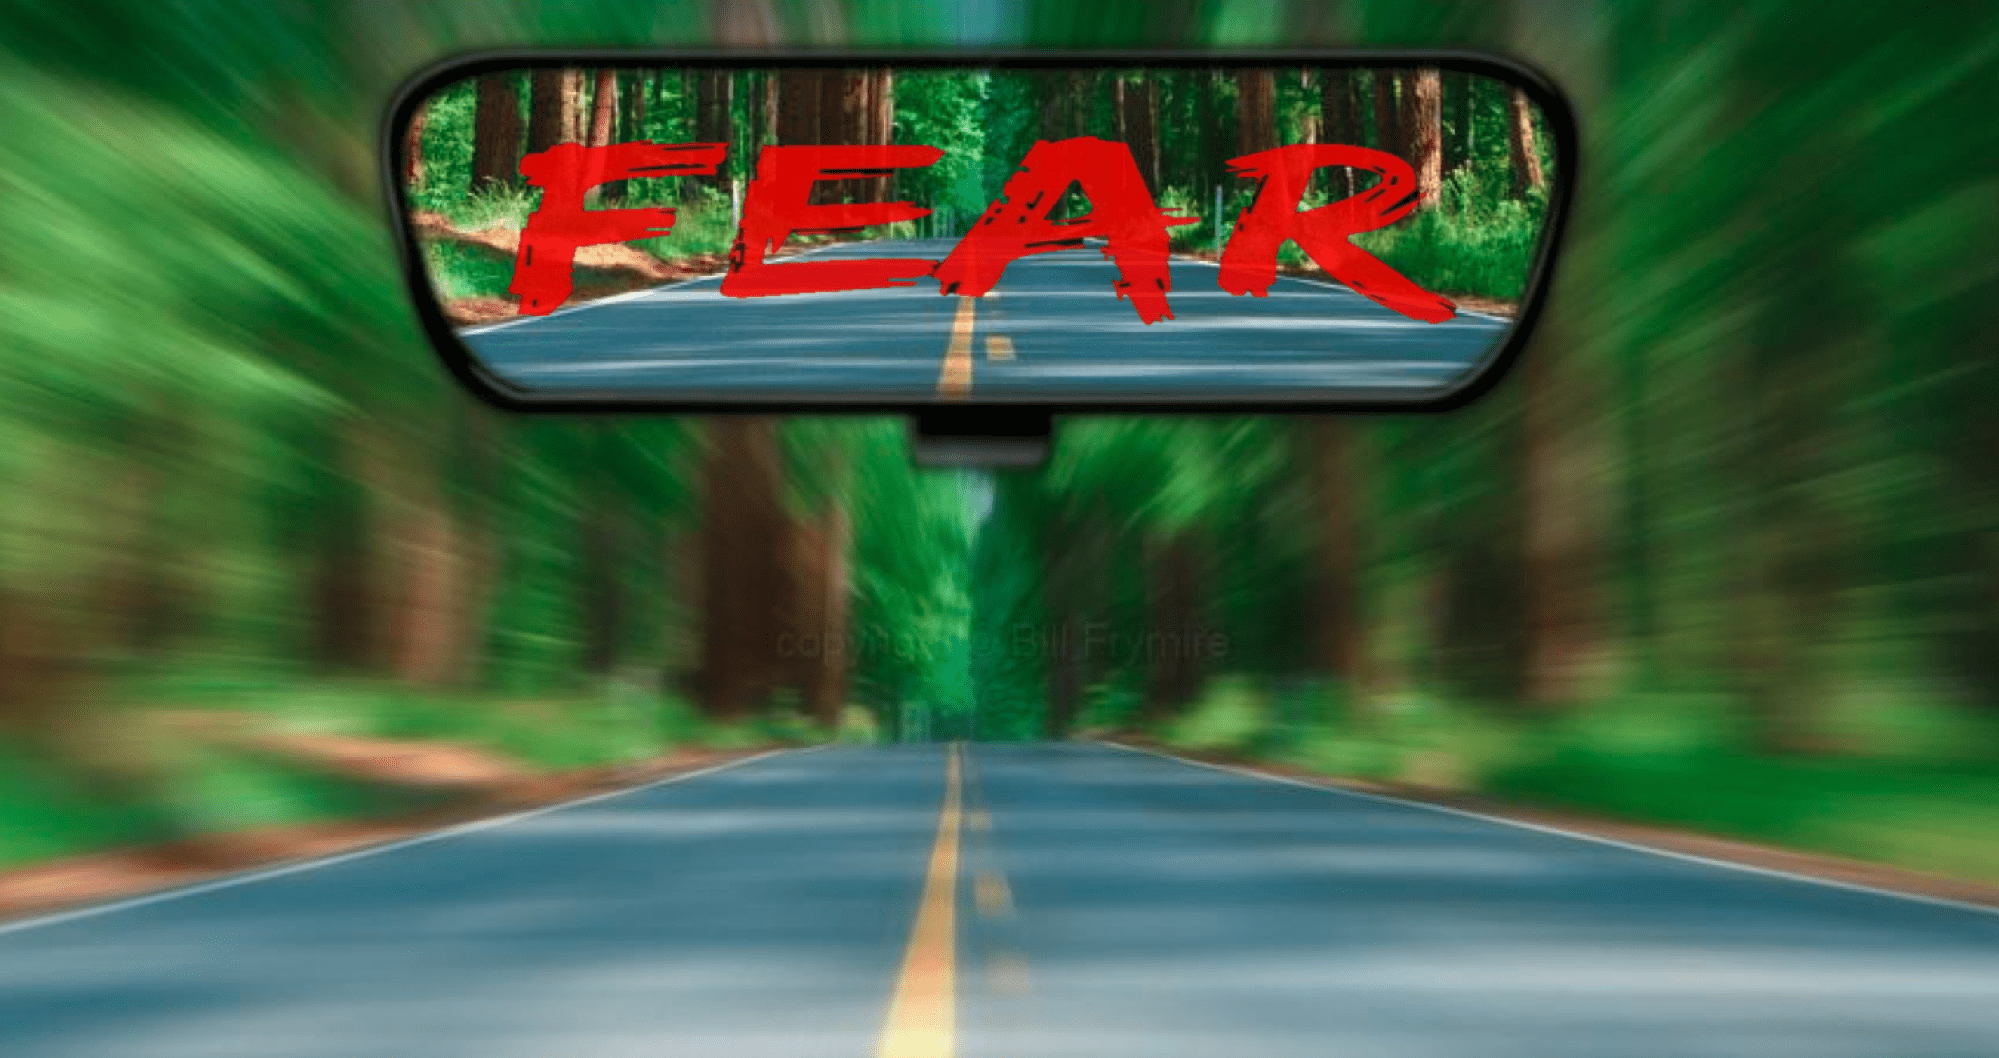 Rear-view mirror in car with word fear in it